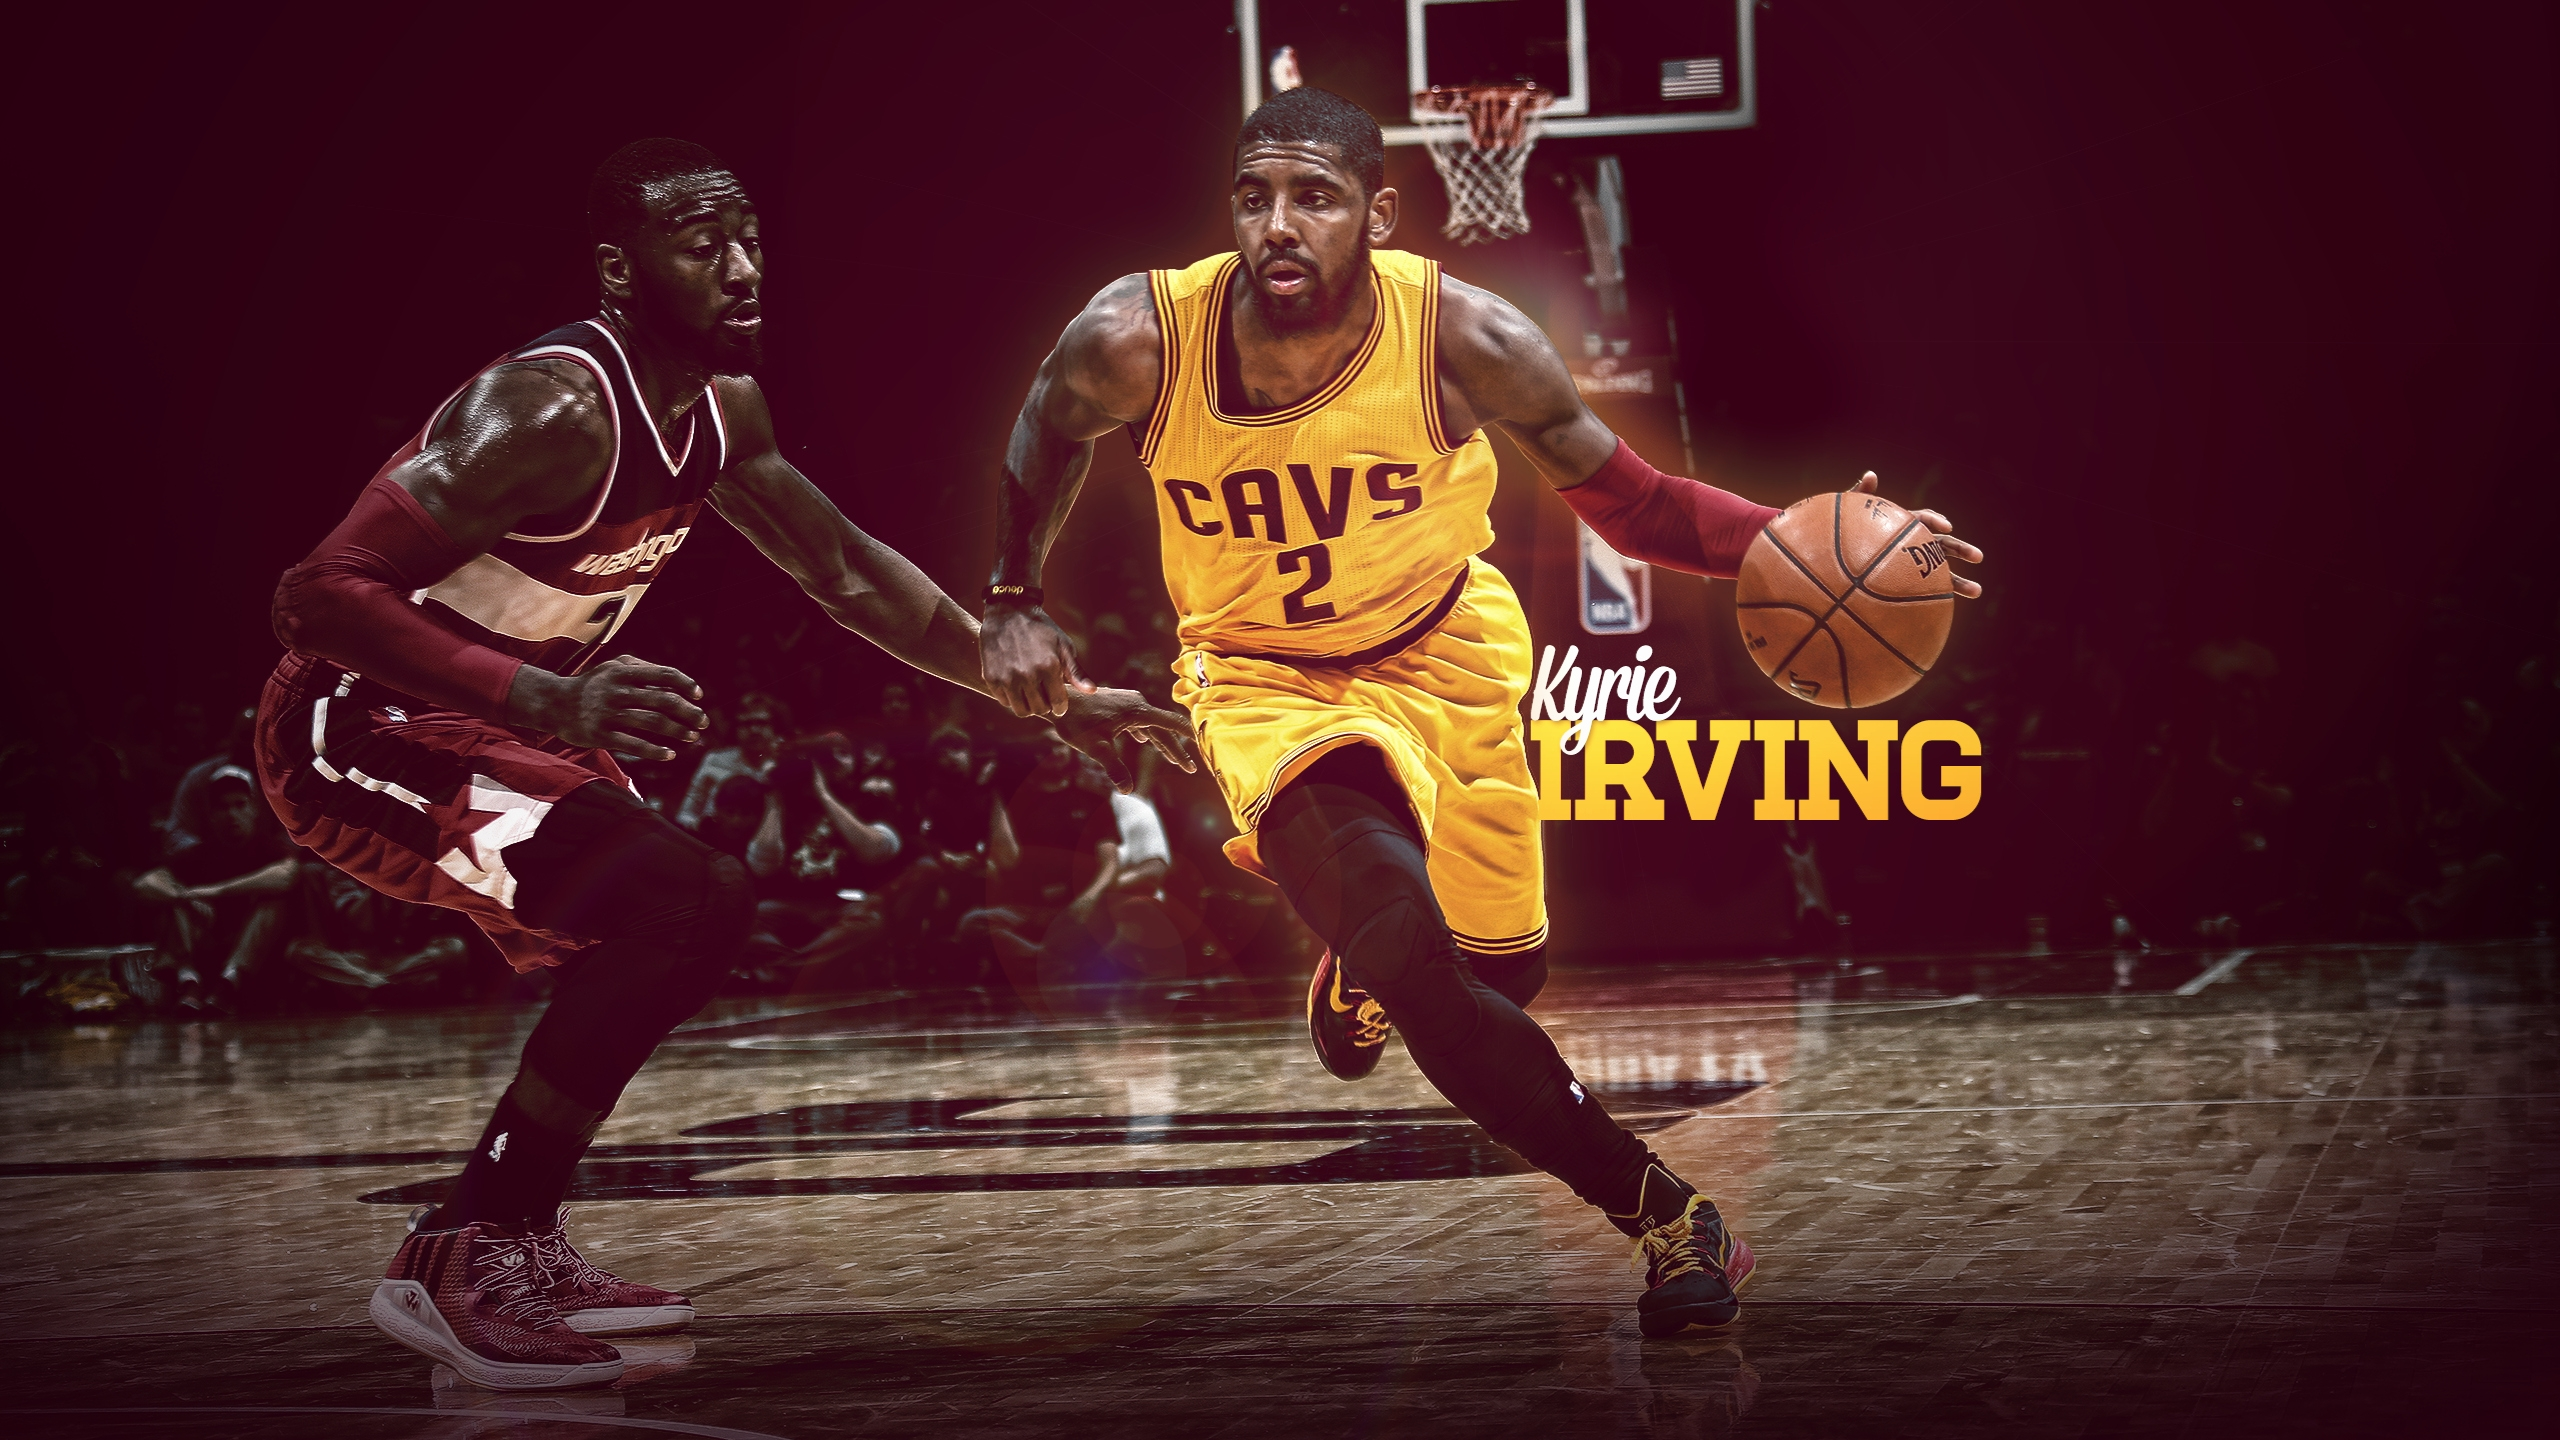 kyrie irving wallpaper awesome fan wallpapers - hd wallpaper